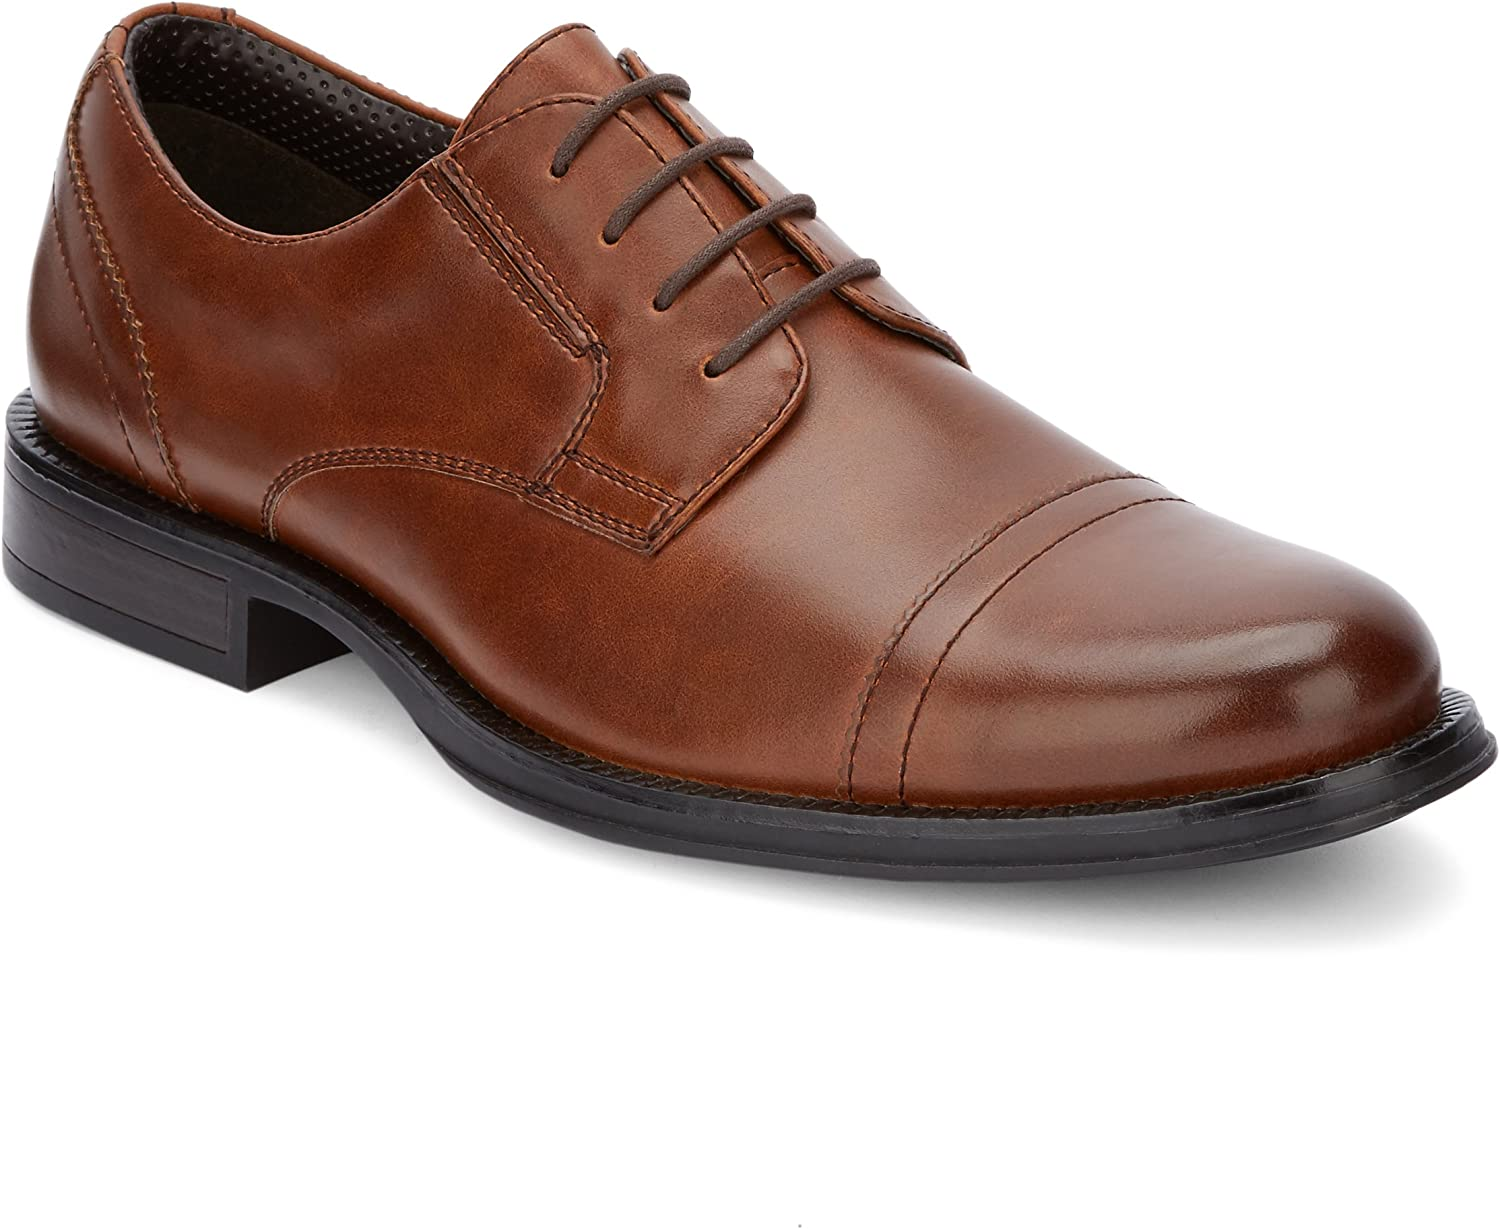 Dockers Mens Garfield Dress Cap Toe Oxford shoes